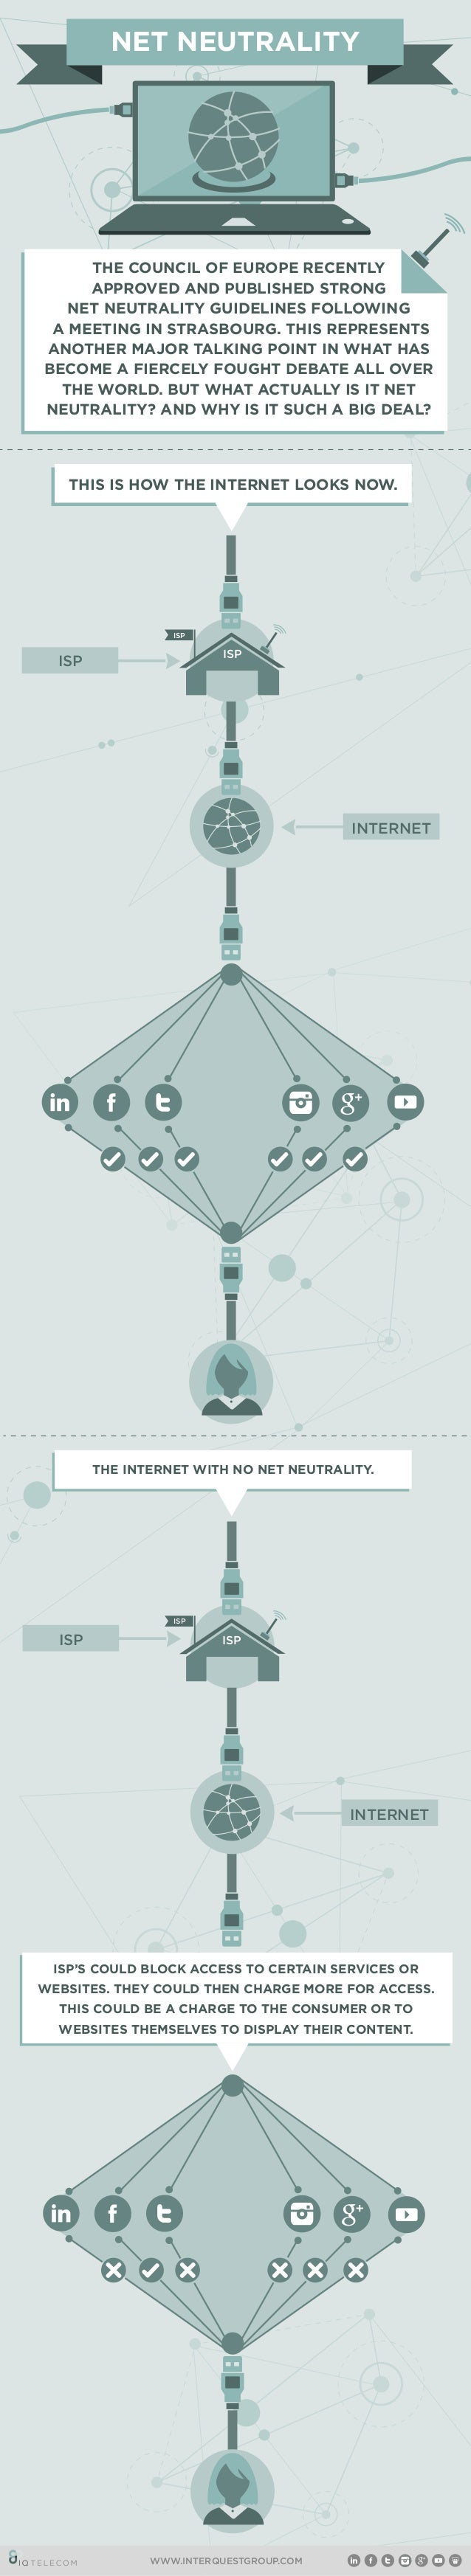 NET NEUTRALITY THE COUNCIL OF EUROPE RECENTLY APPROVED AND PUBLISHED STRONG NET NEUTRALITY GUIDELINES FOLLOWING A MEETING ...